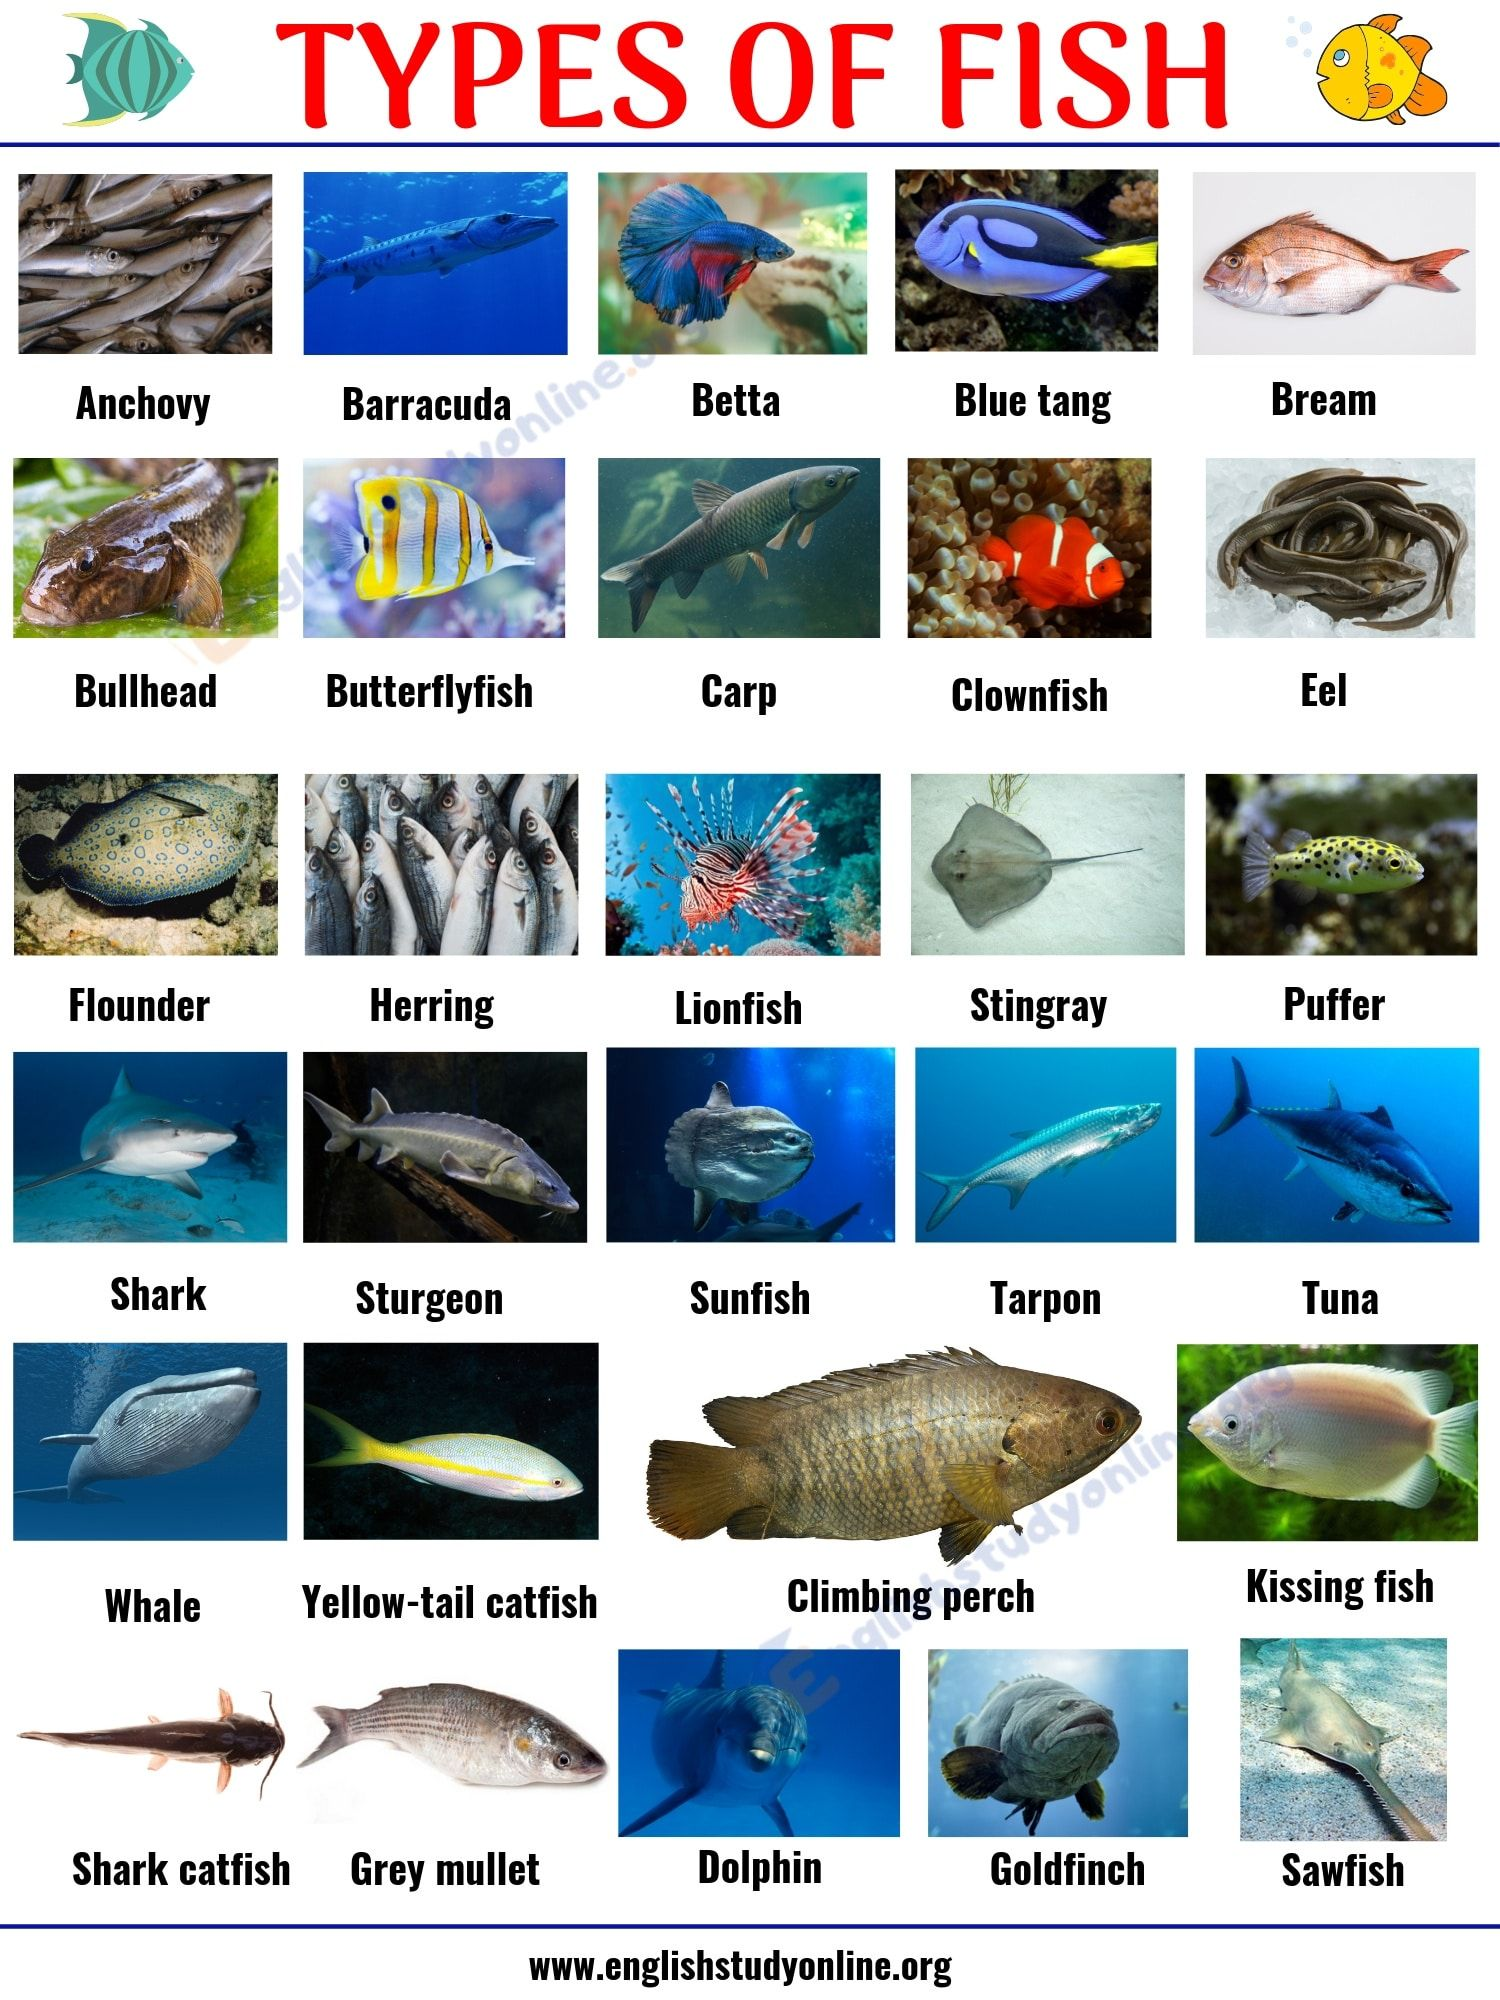 Types Of Fish List Of 29 Popular Fish Names With Pictures In English In 2020 Types Of Fish Fish Fish Chart